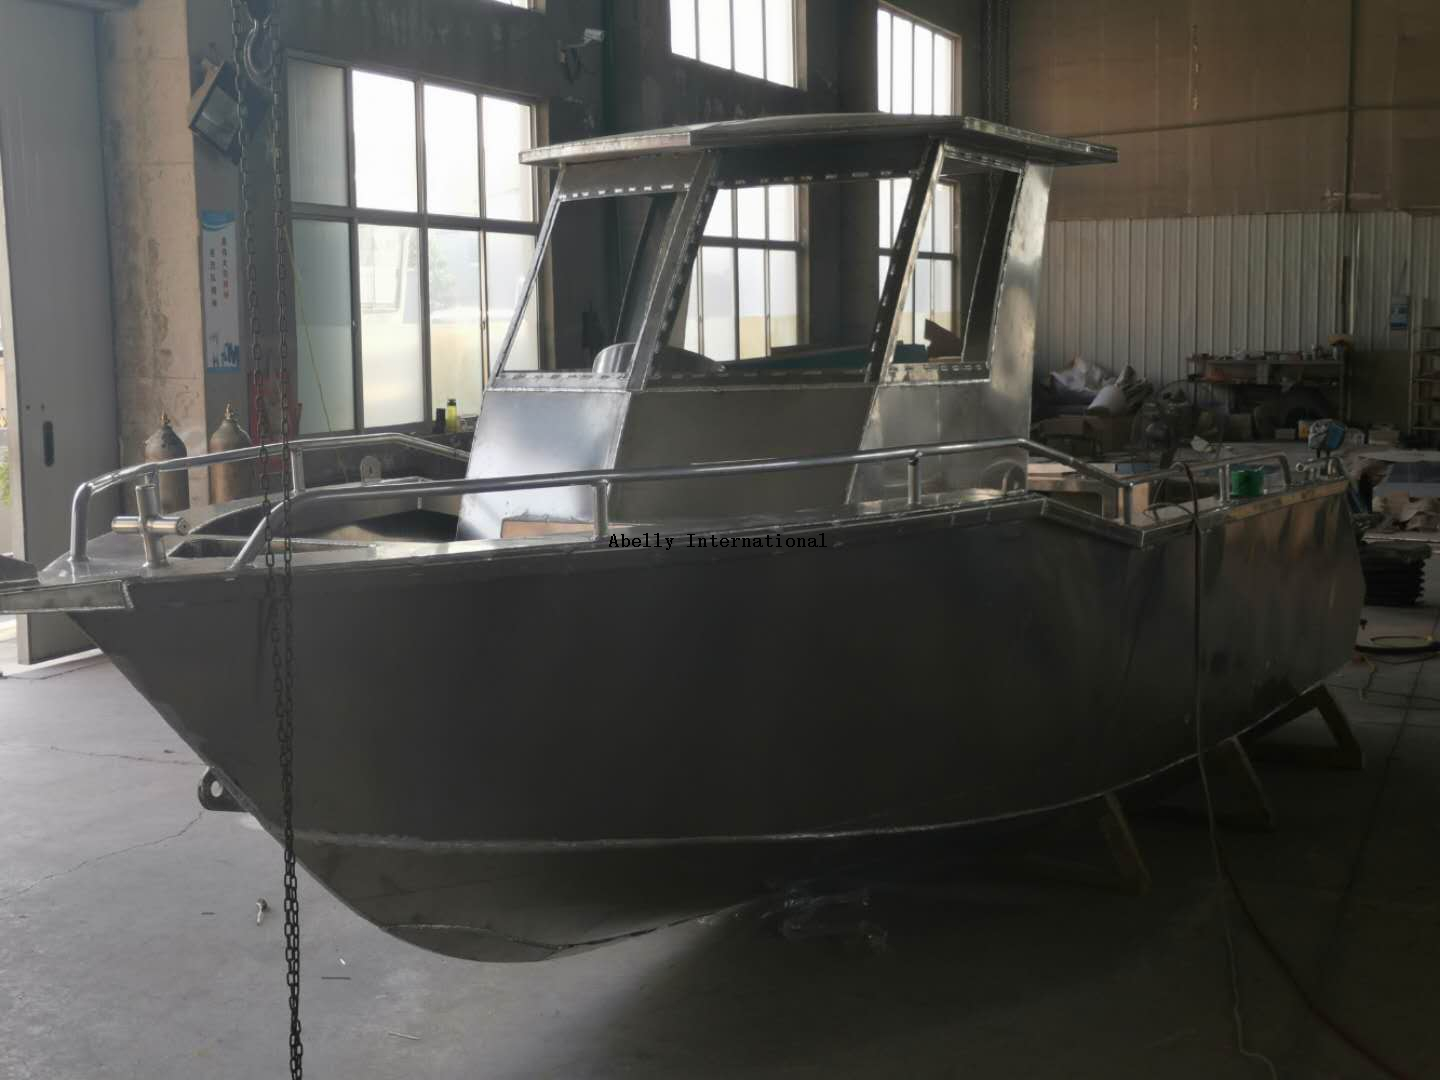 6.5m all welded aluminum walkaround boat